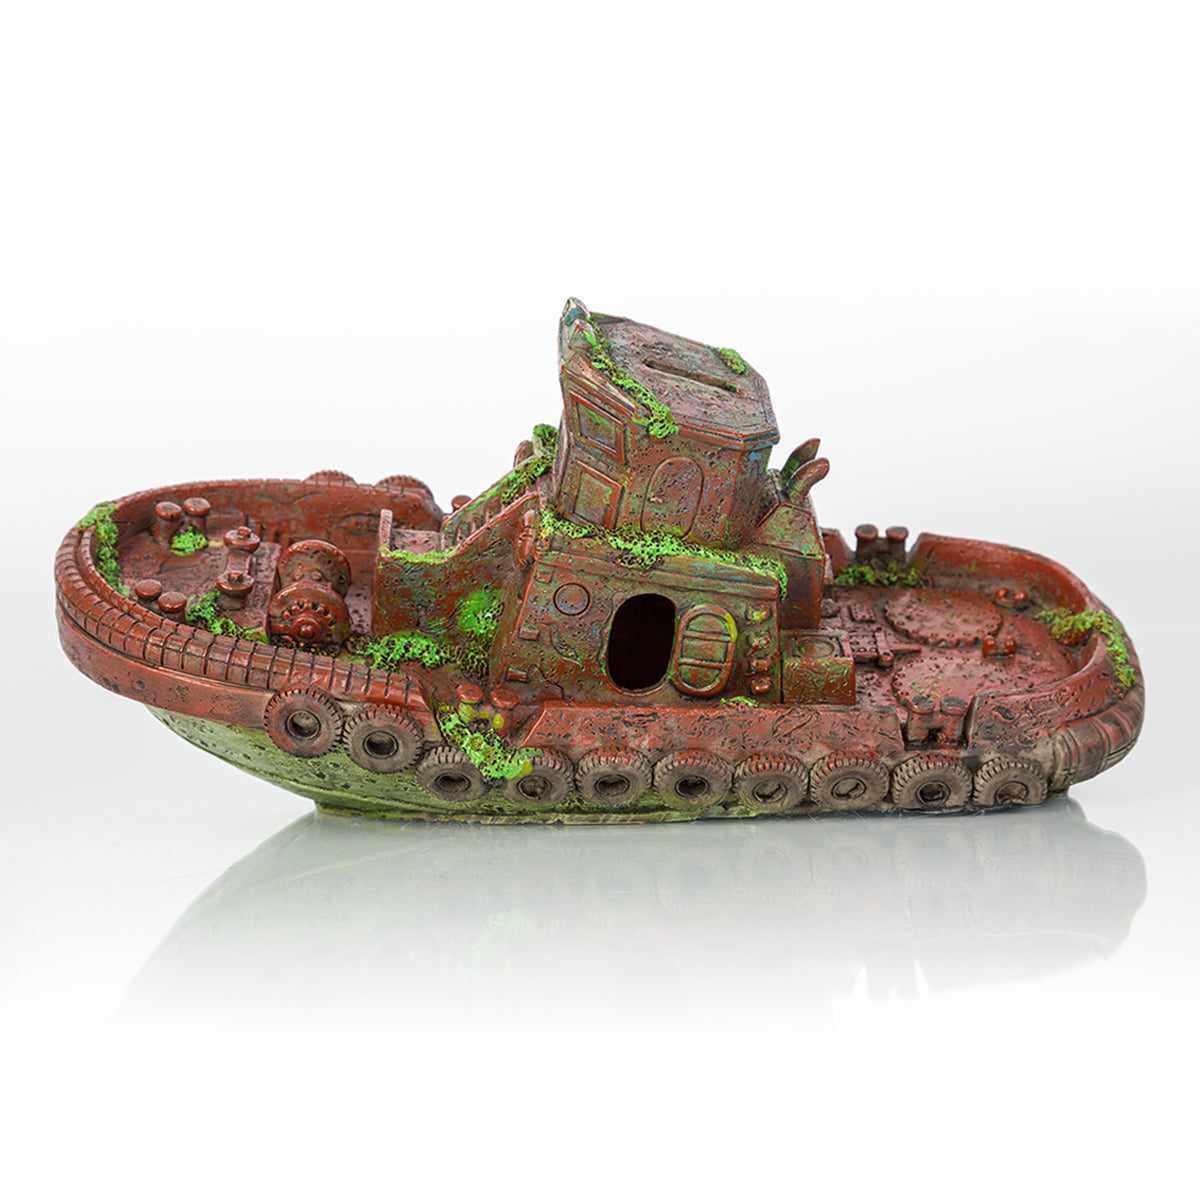 Biobubble Bio-60307300 Decorative Sunken Tugboat